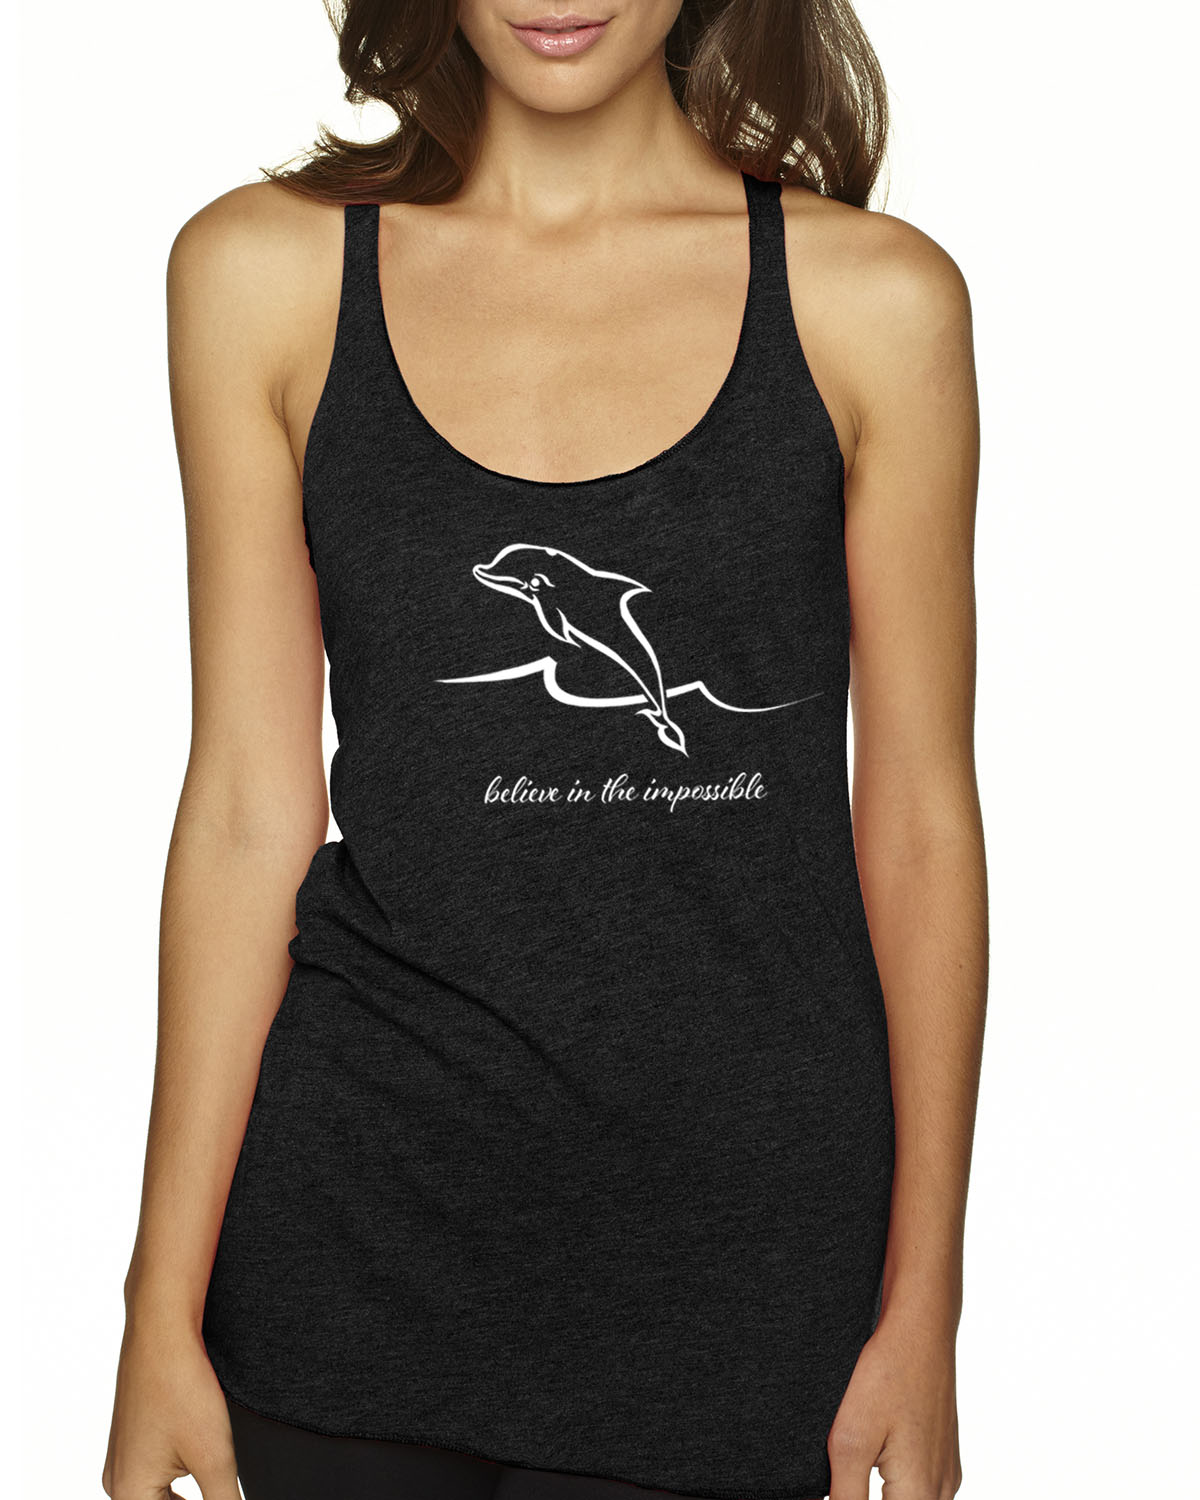 Women's Tri-blend Dolphin Tank Top (Vintage Black)